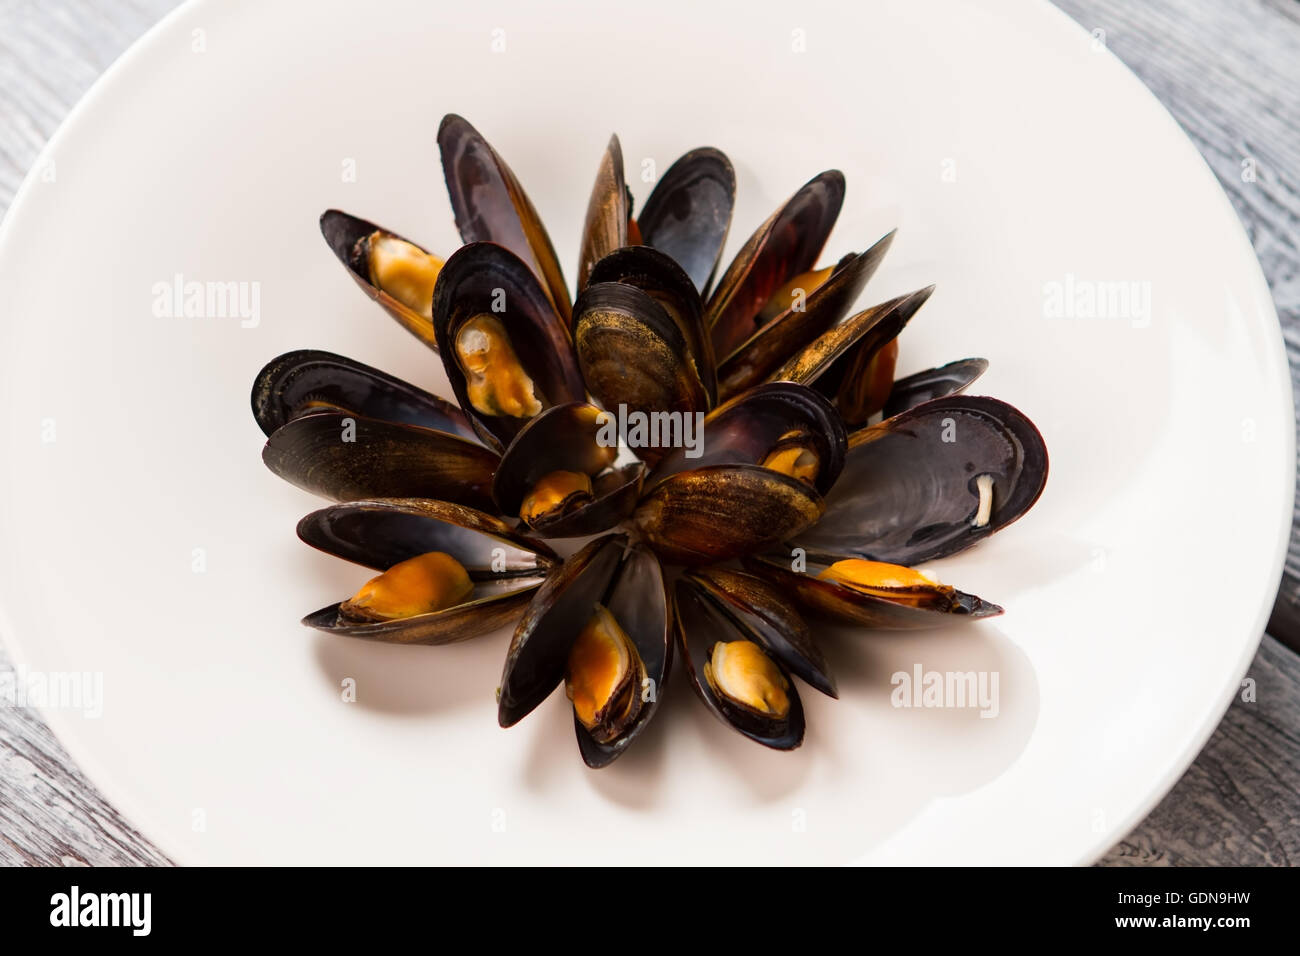 Cooked mussels on a plate. - Stock Image